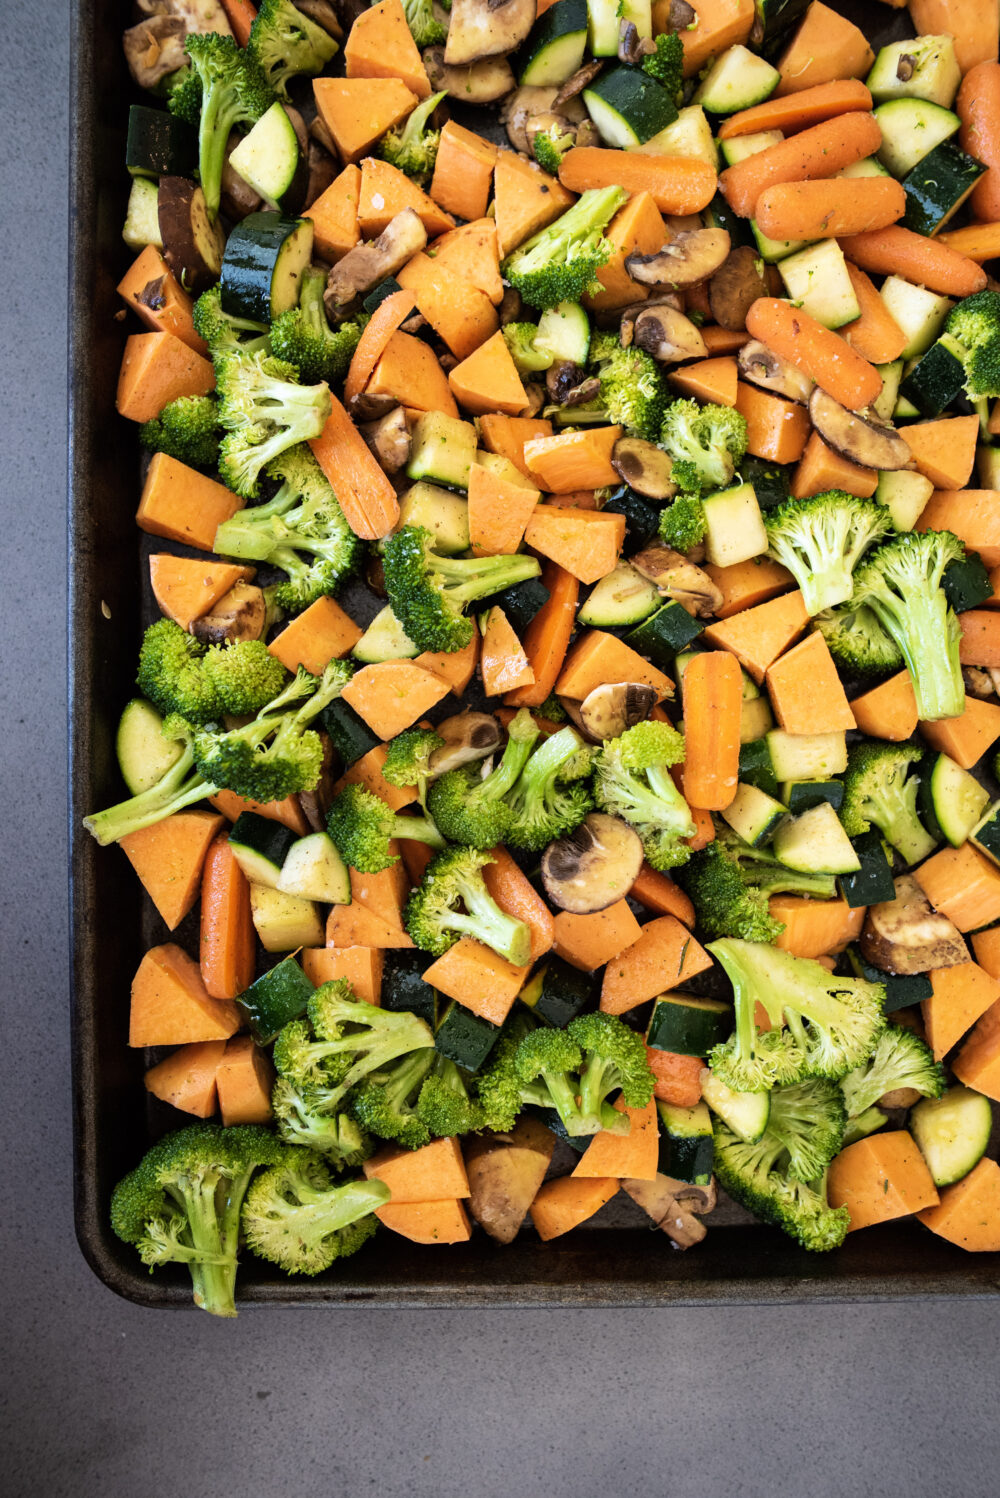 raw vegetables including carrots, mushrooms, sweet potatoes, and zucchini